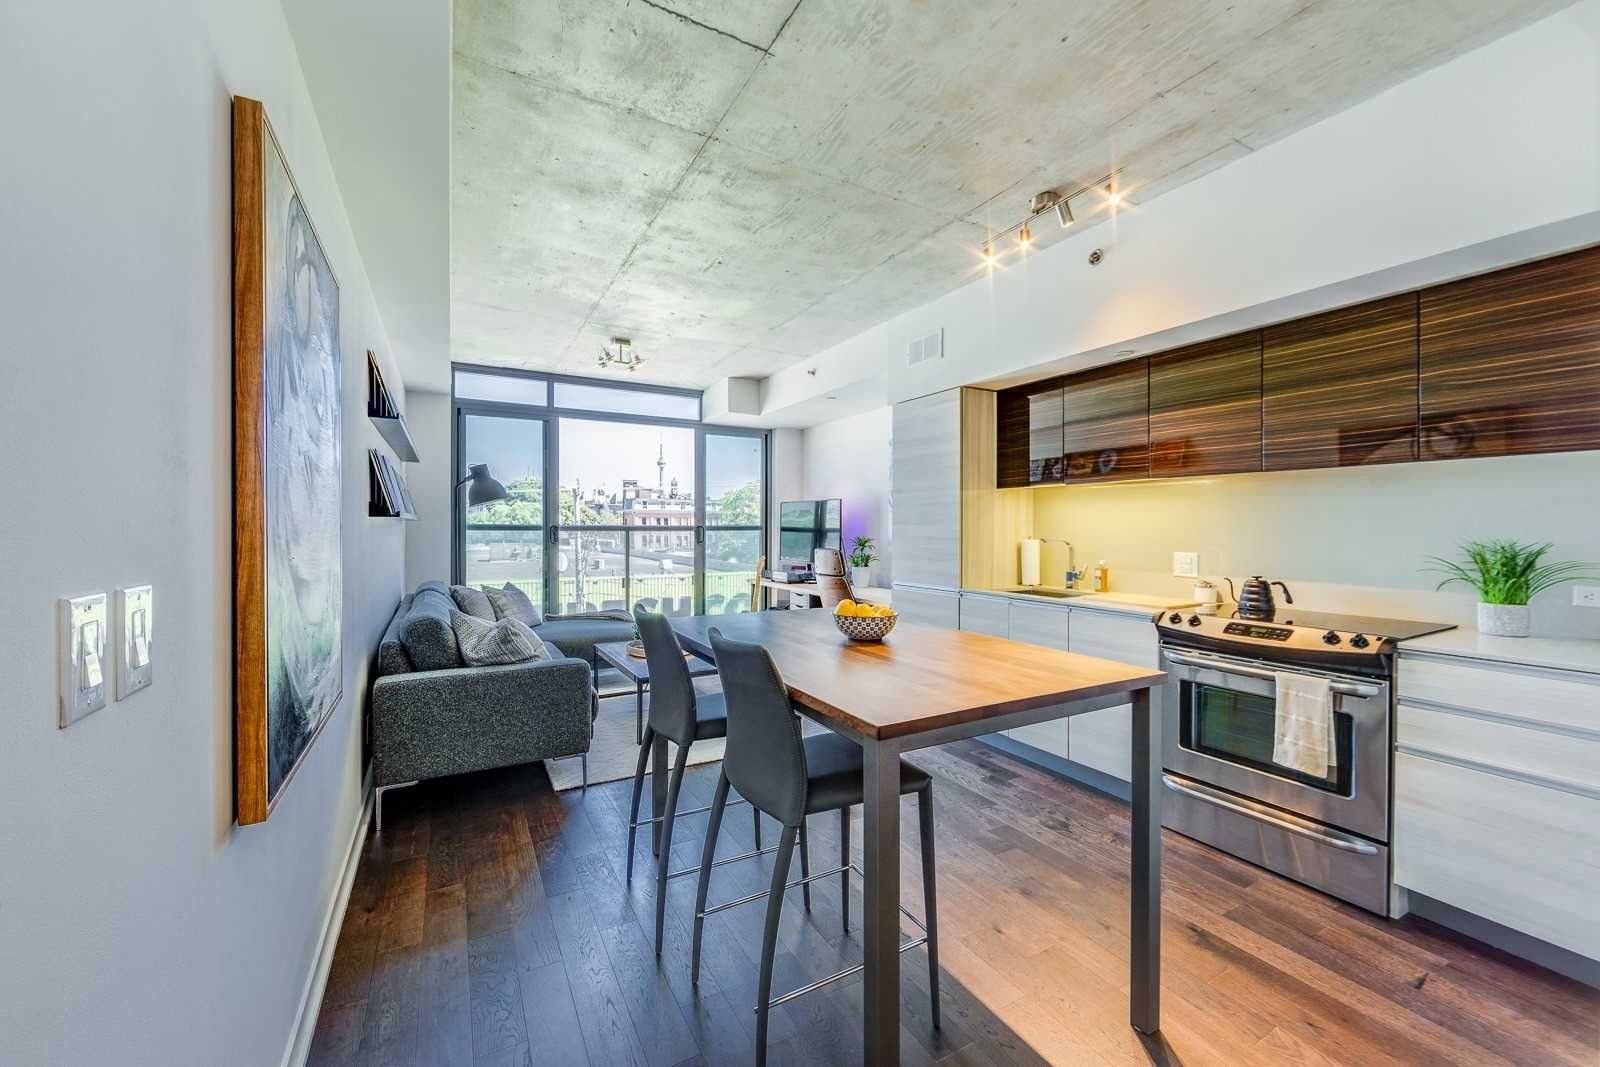 8 Gladstone Ave, unit 307 for sale in Little Portugal - image #1